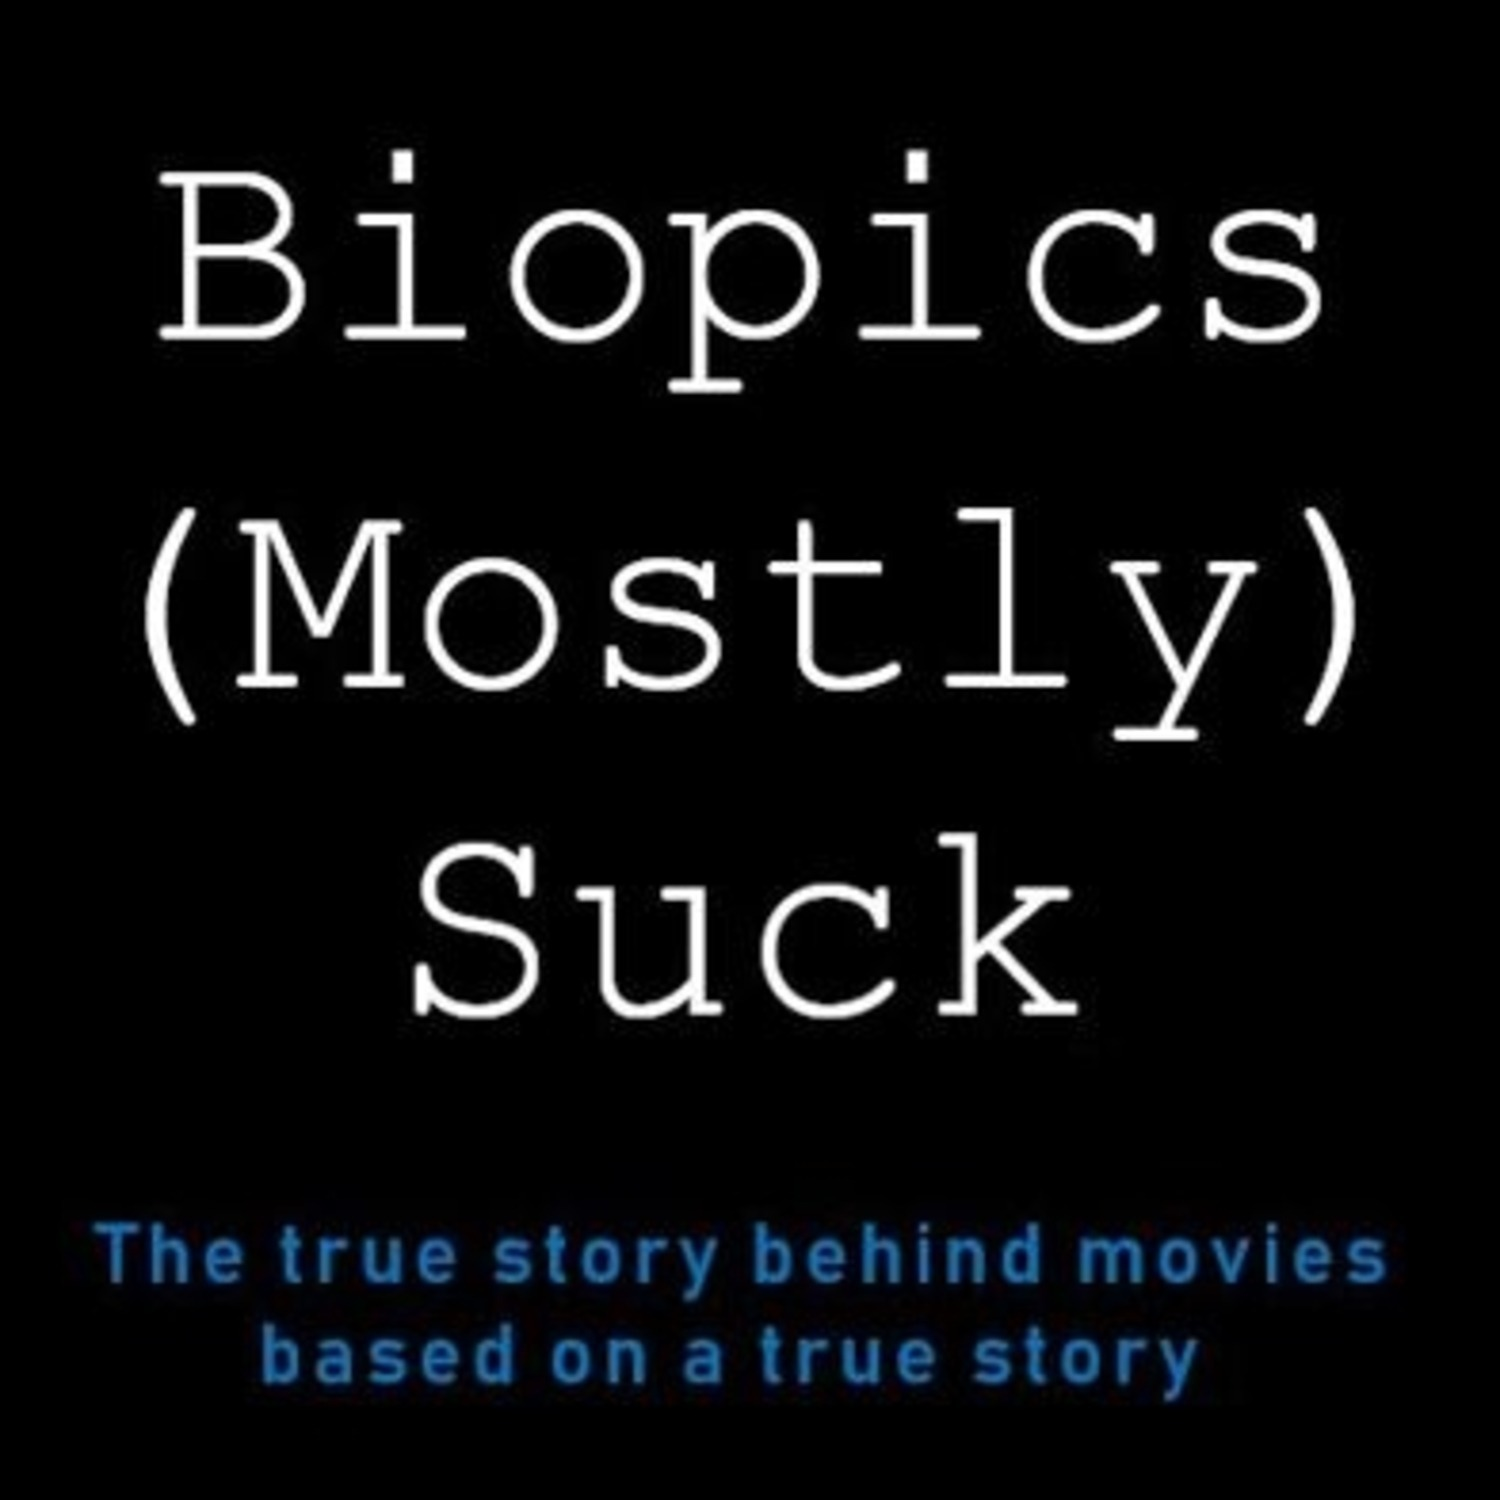 Biopics (Mostly) Suck - The Informant! - Episode 13